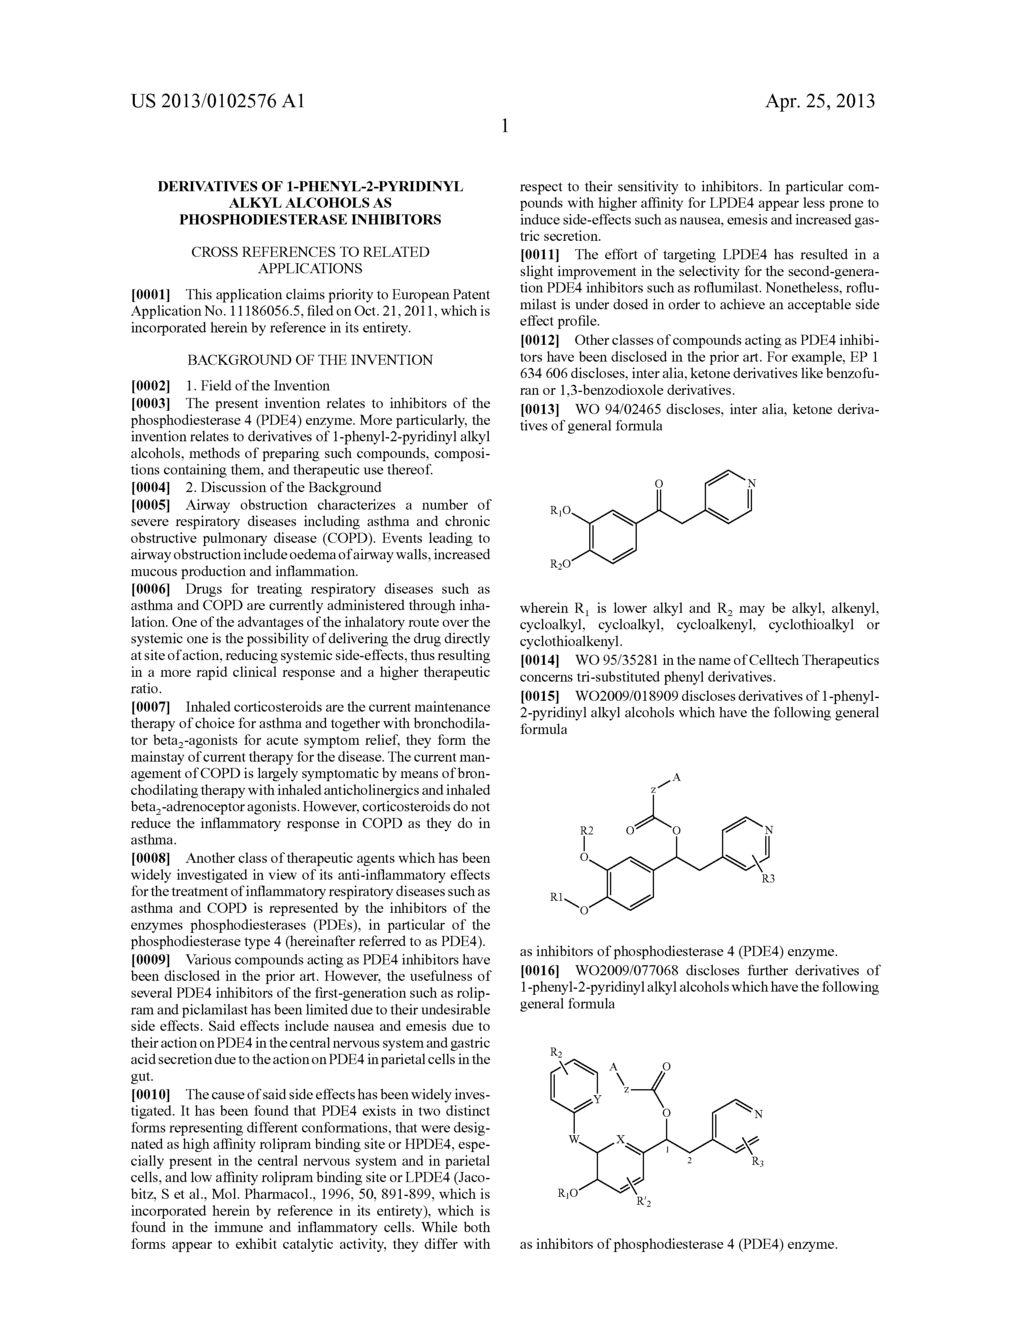 DERIVATIVES OF 1-PHENYL-2-PYRIDINYL ALKYL ALCOHOLS AS PHOSPHODIESTERASE     INHIBITORS - diagram, schematic, and image 02